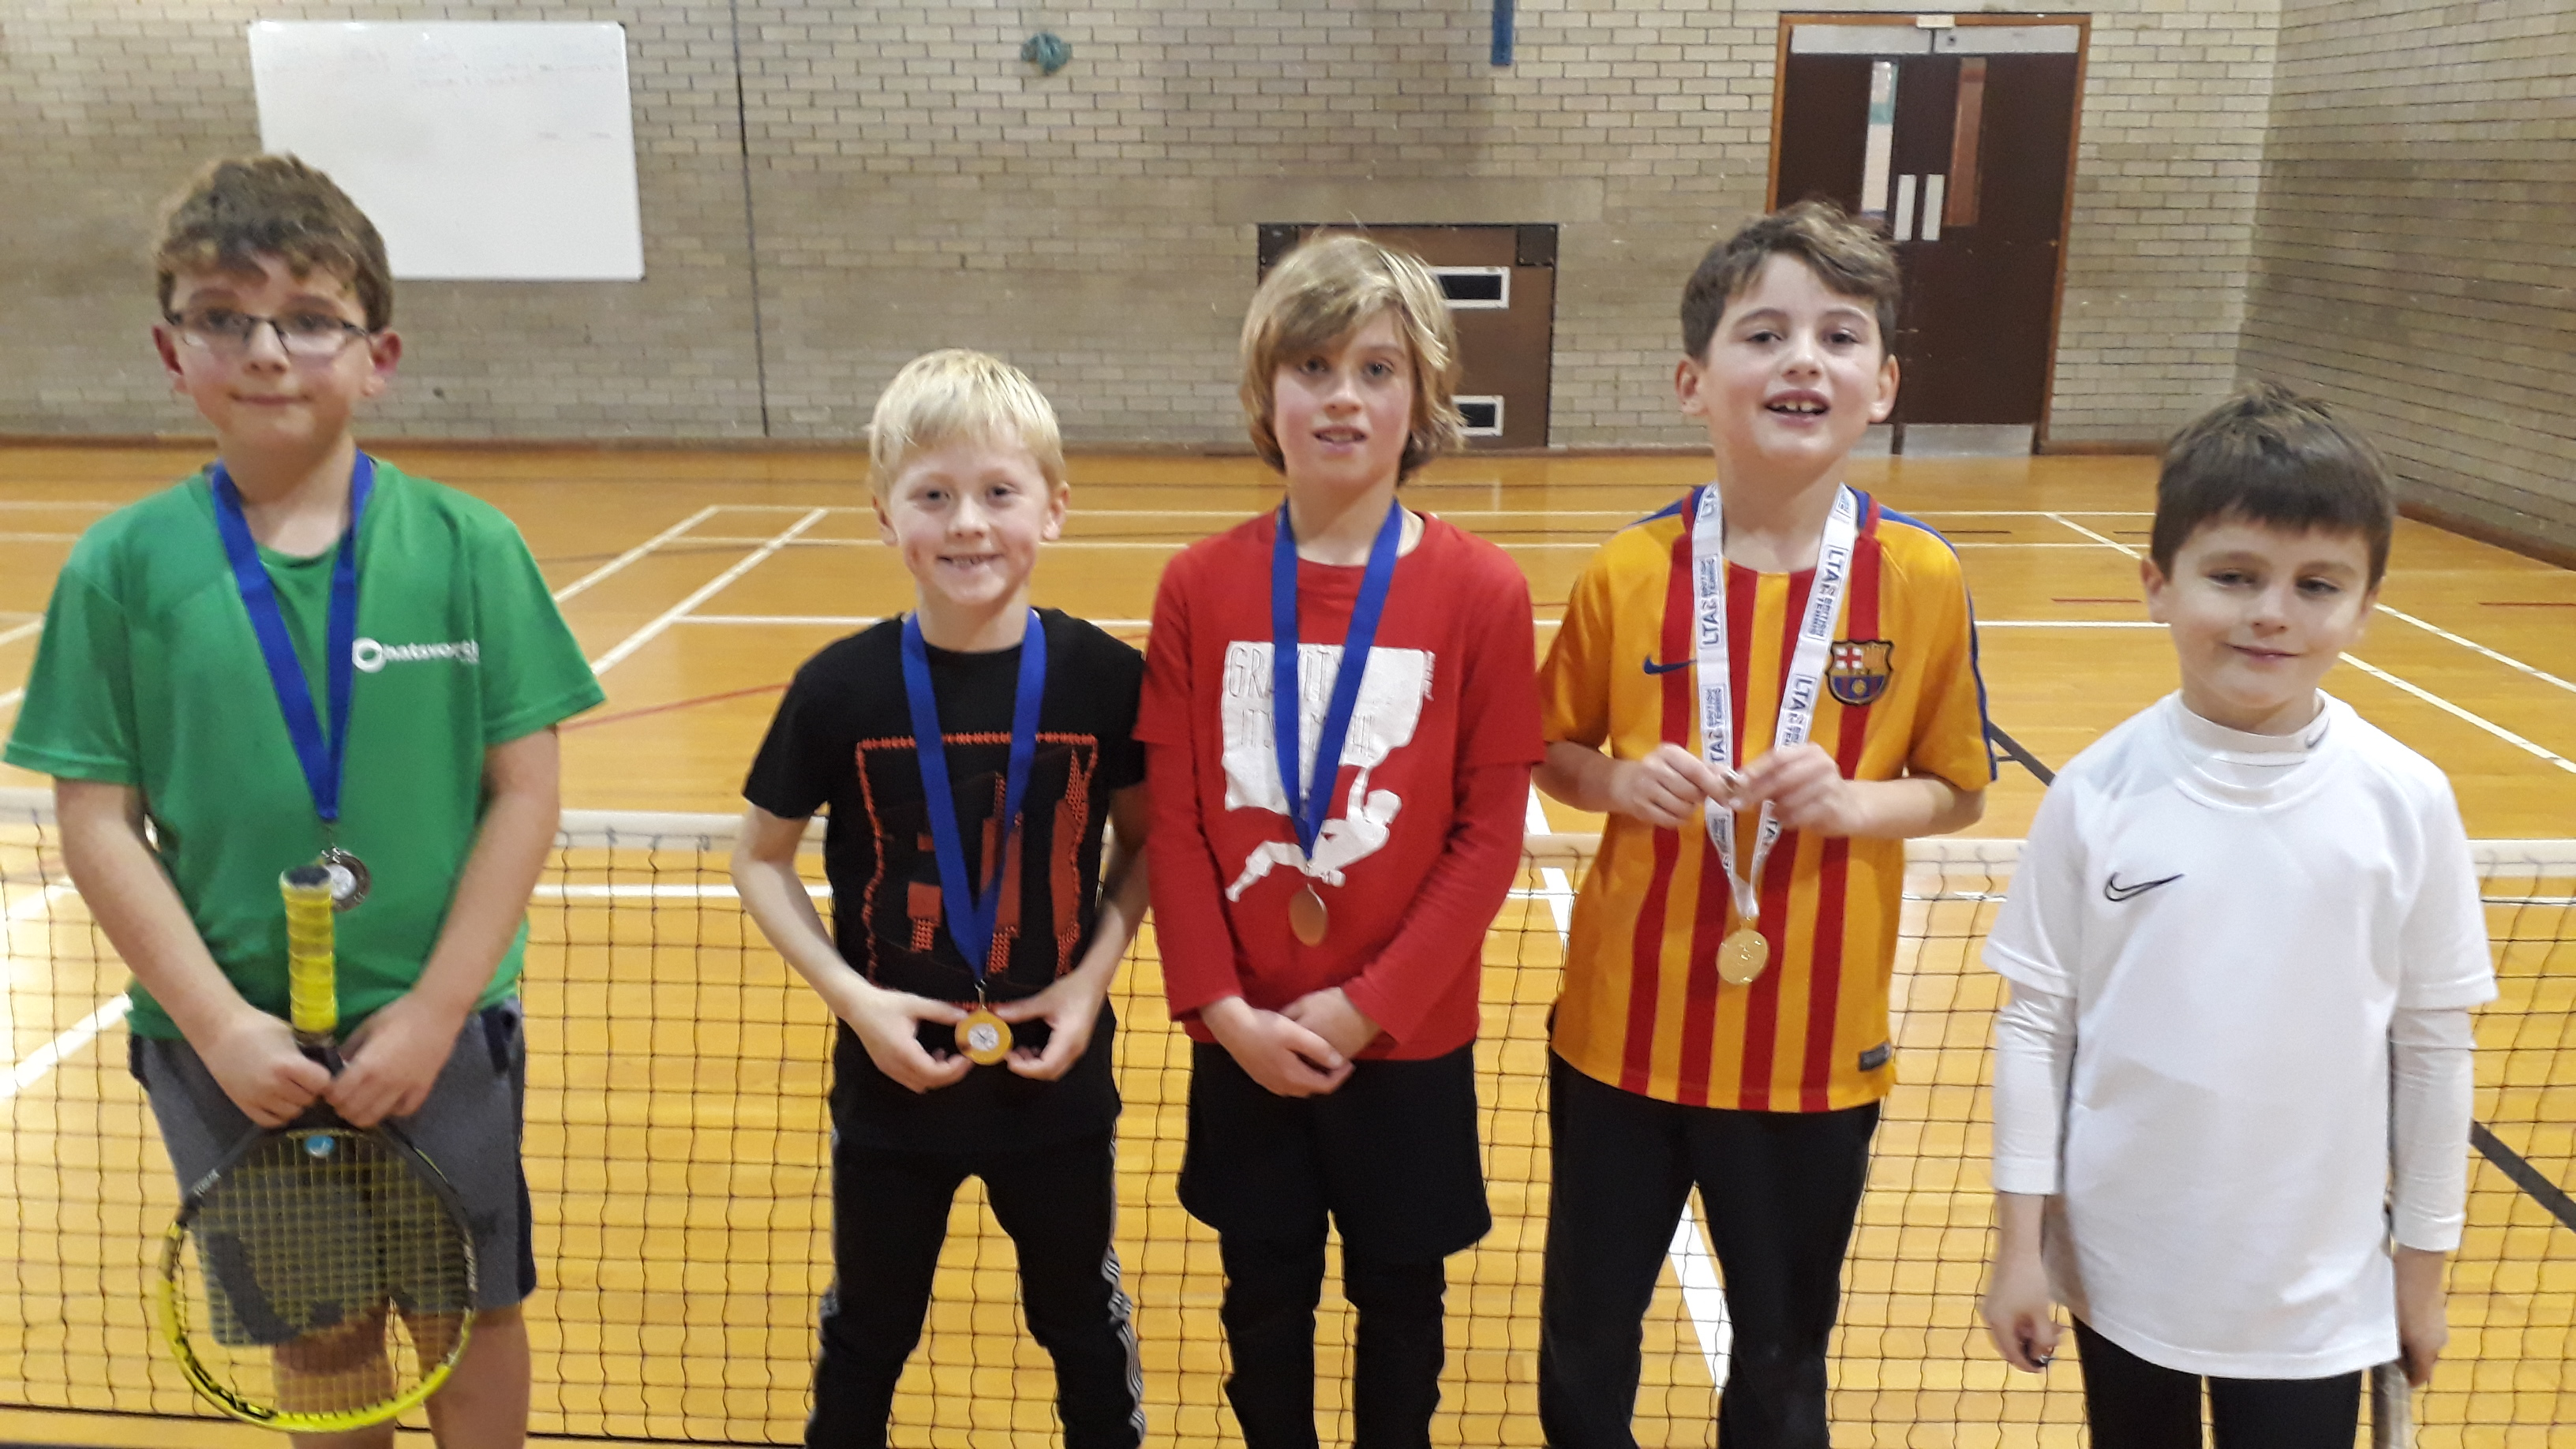 2nd Daniel, Winner Adam, 3rd Nathan, Consolation winner Lewis and Consolation R-Up Fergus.